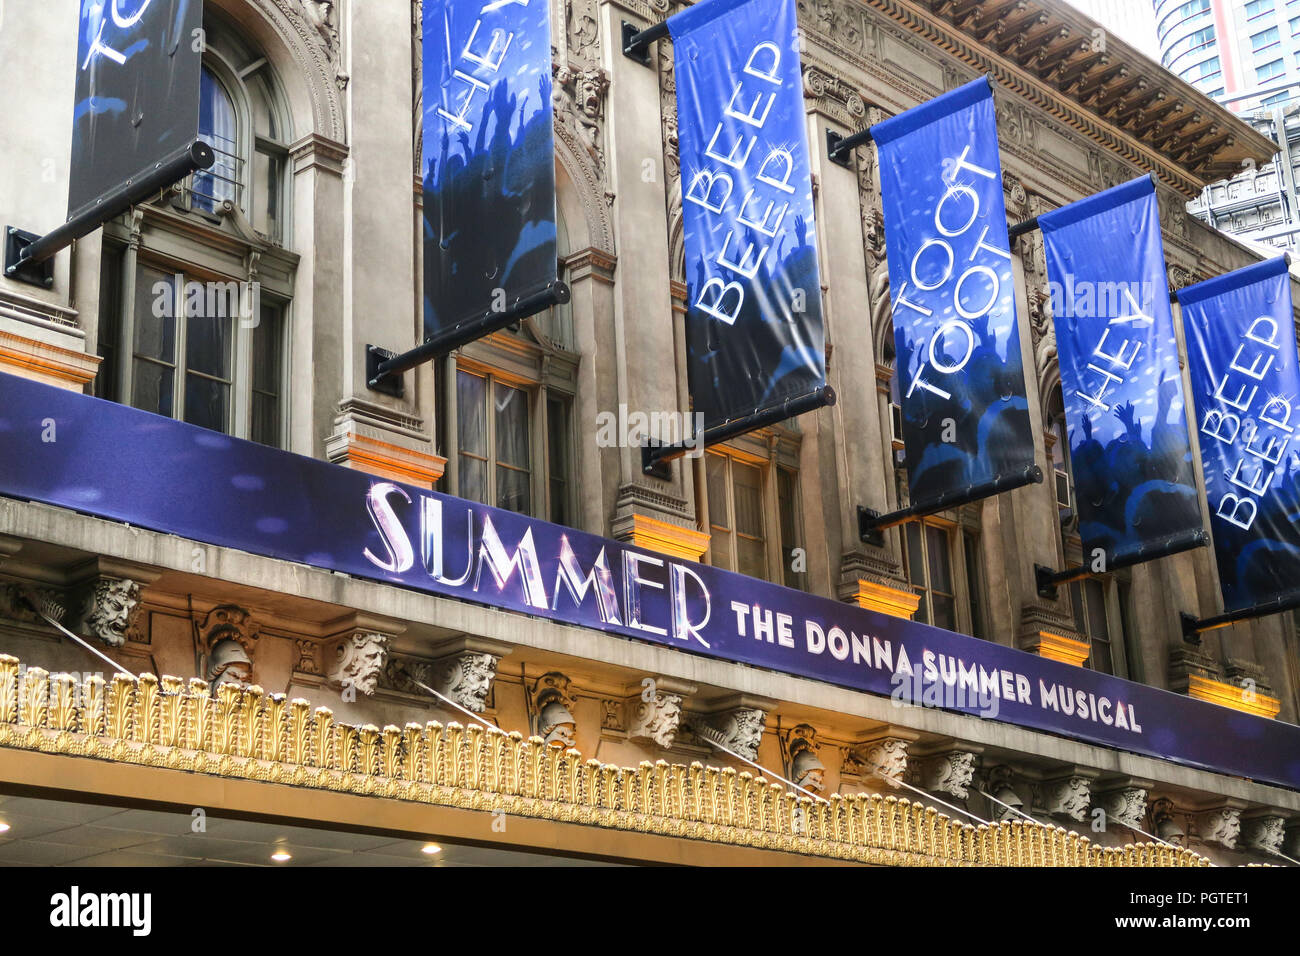 Signs and banners on the Donna Sumner Musical Theater Facade, Times Square, NYC, USA - Stock Image